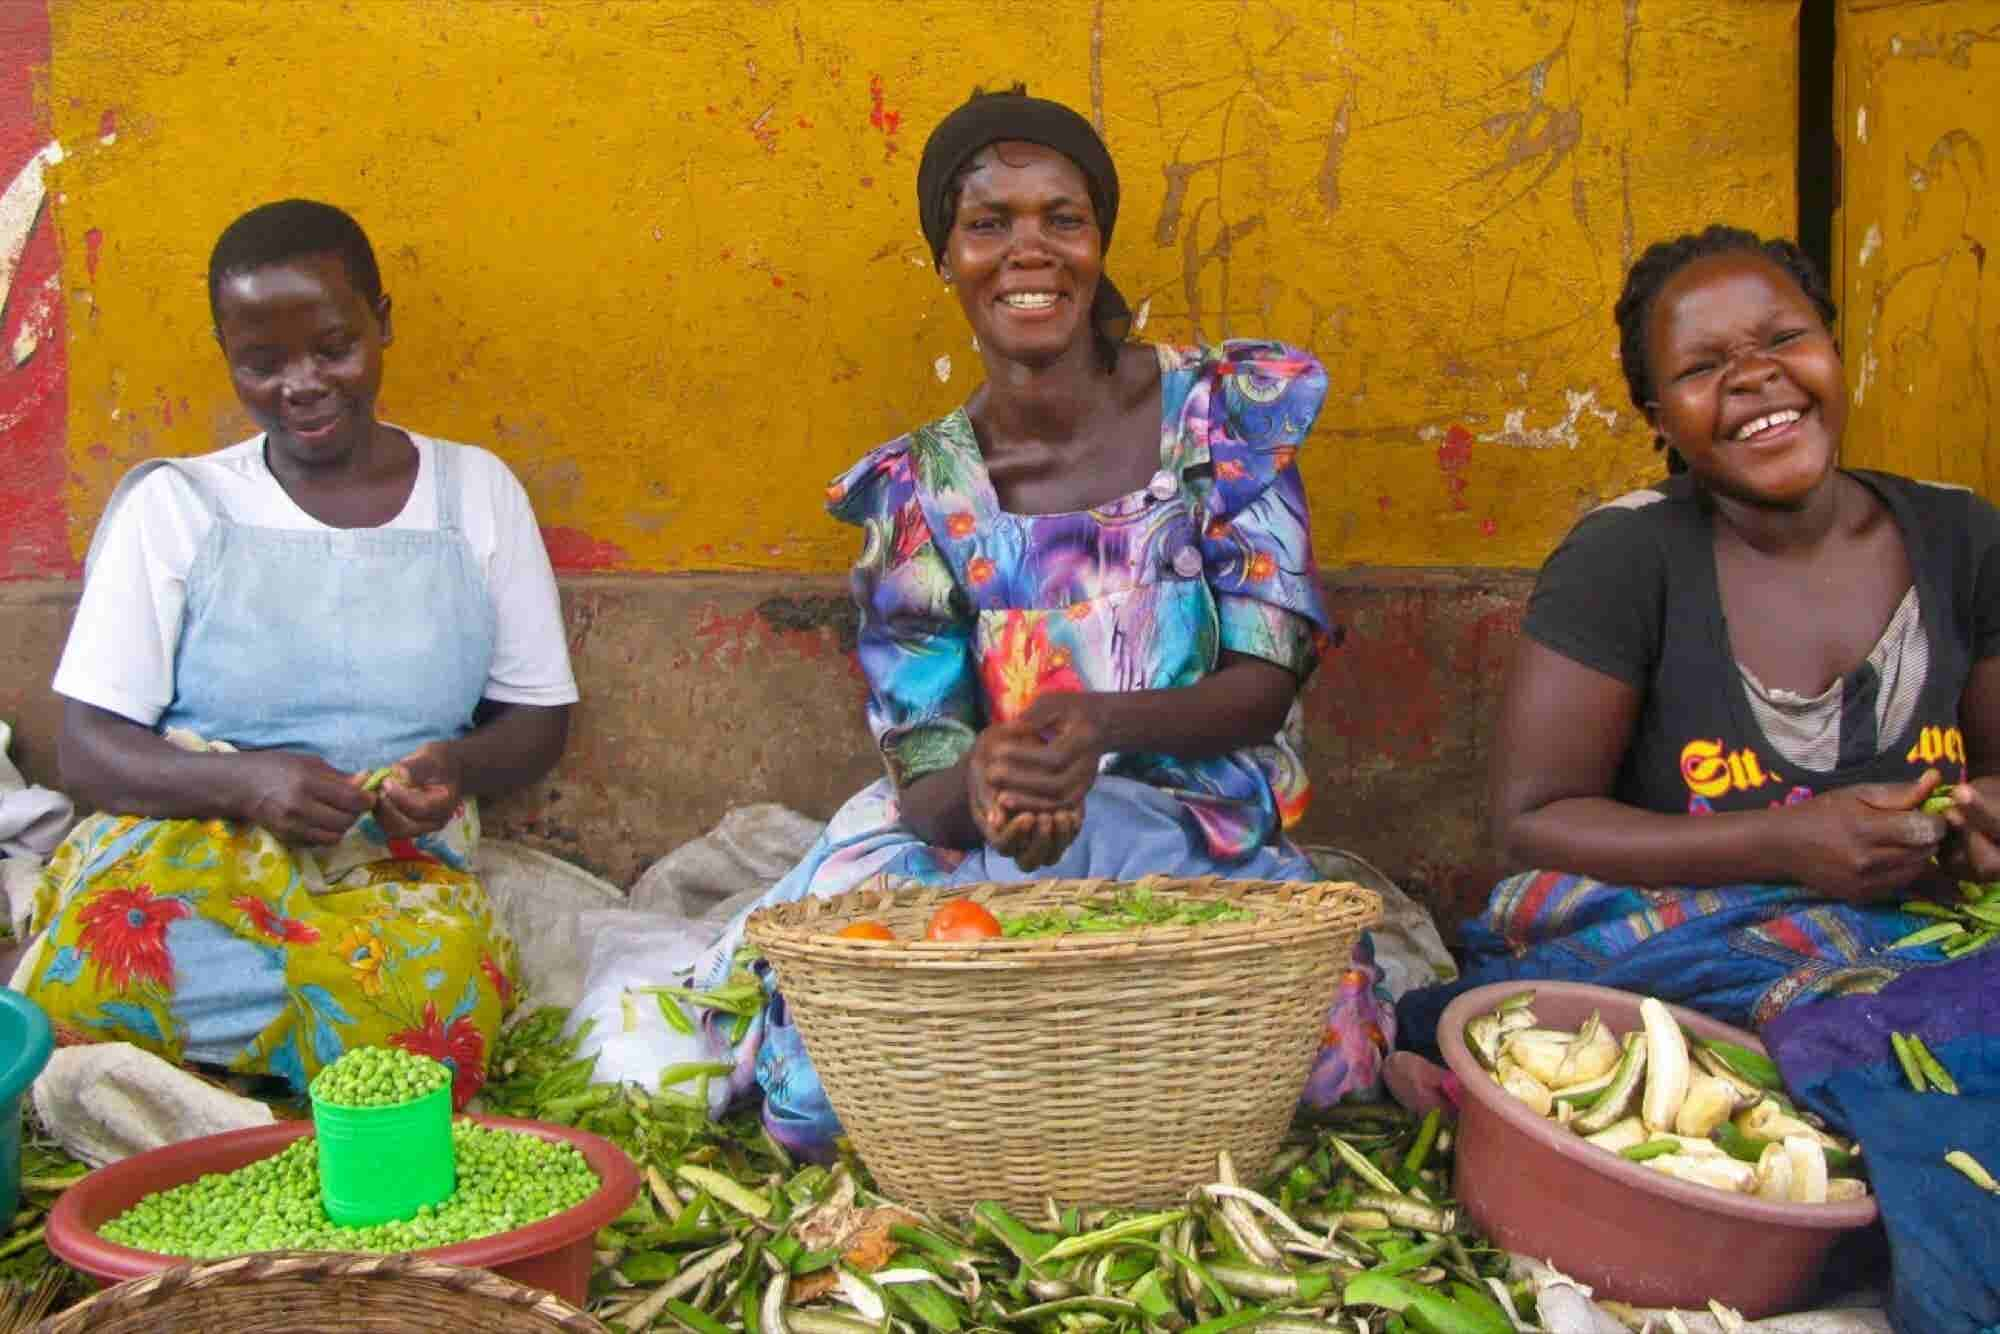 Street Business School, in Uganda: Entrepreneurship Is the Path out of...